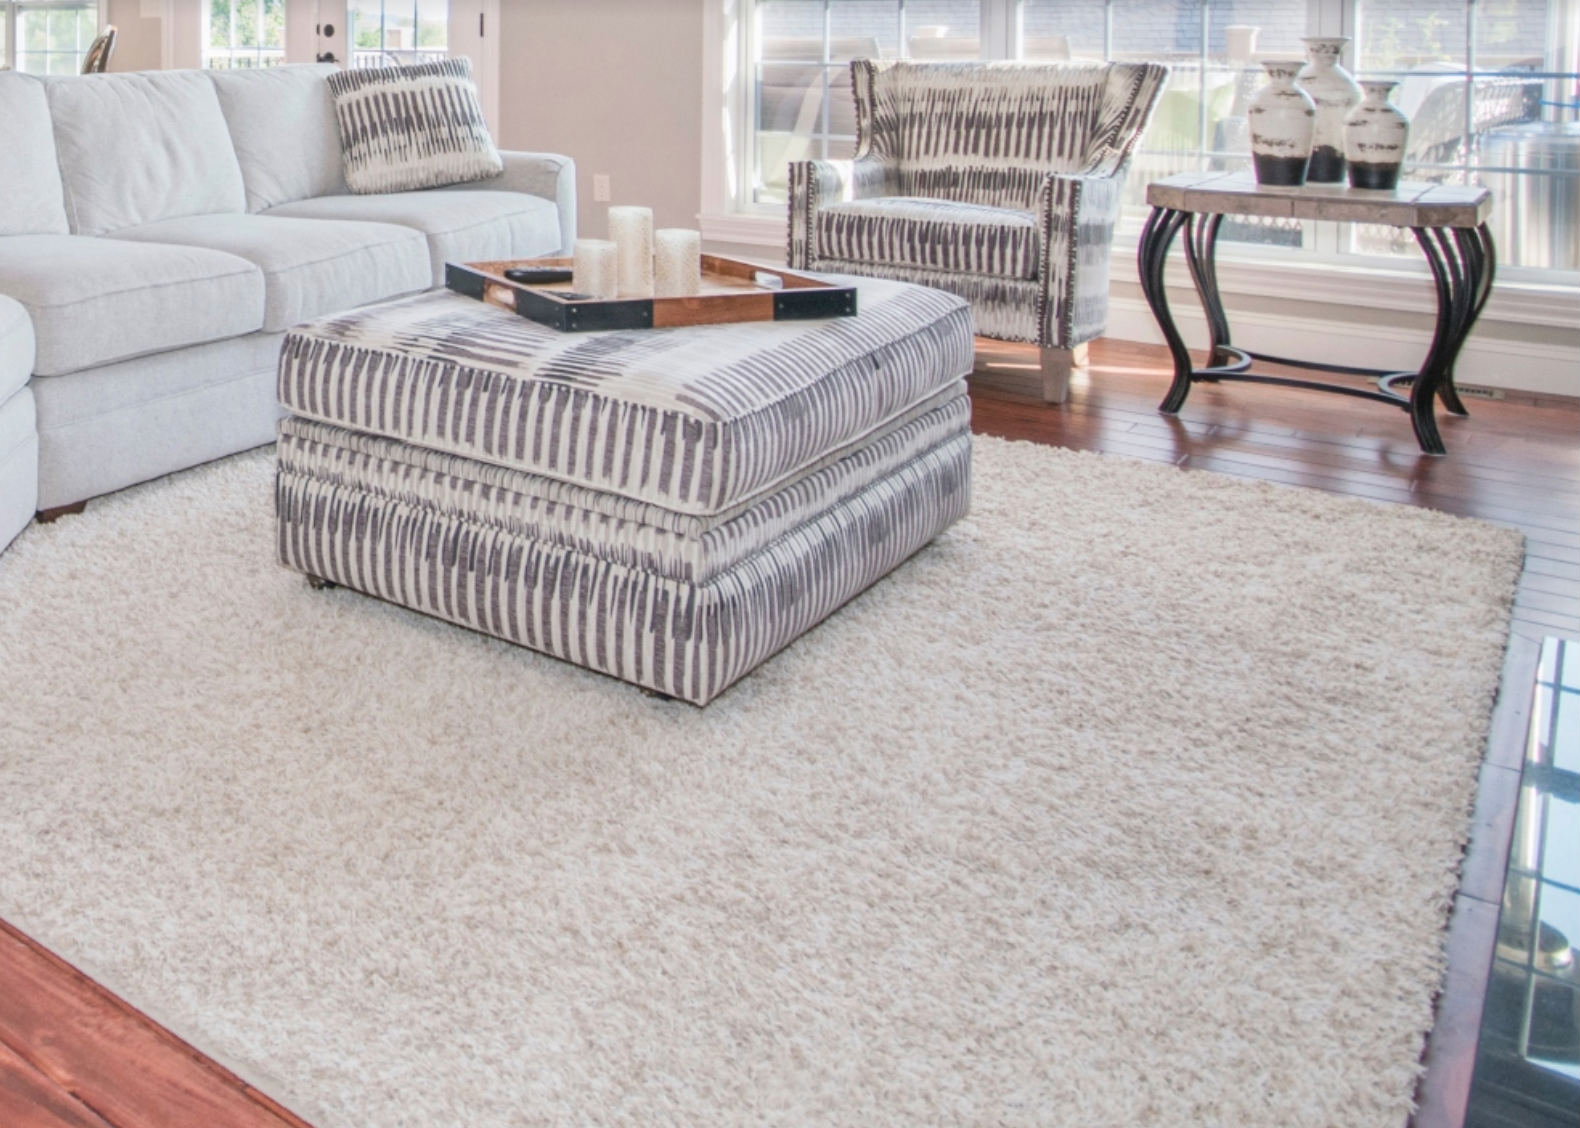 Canton Mi Carpet Cleaning Service Near ME